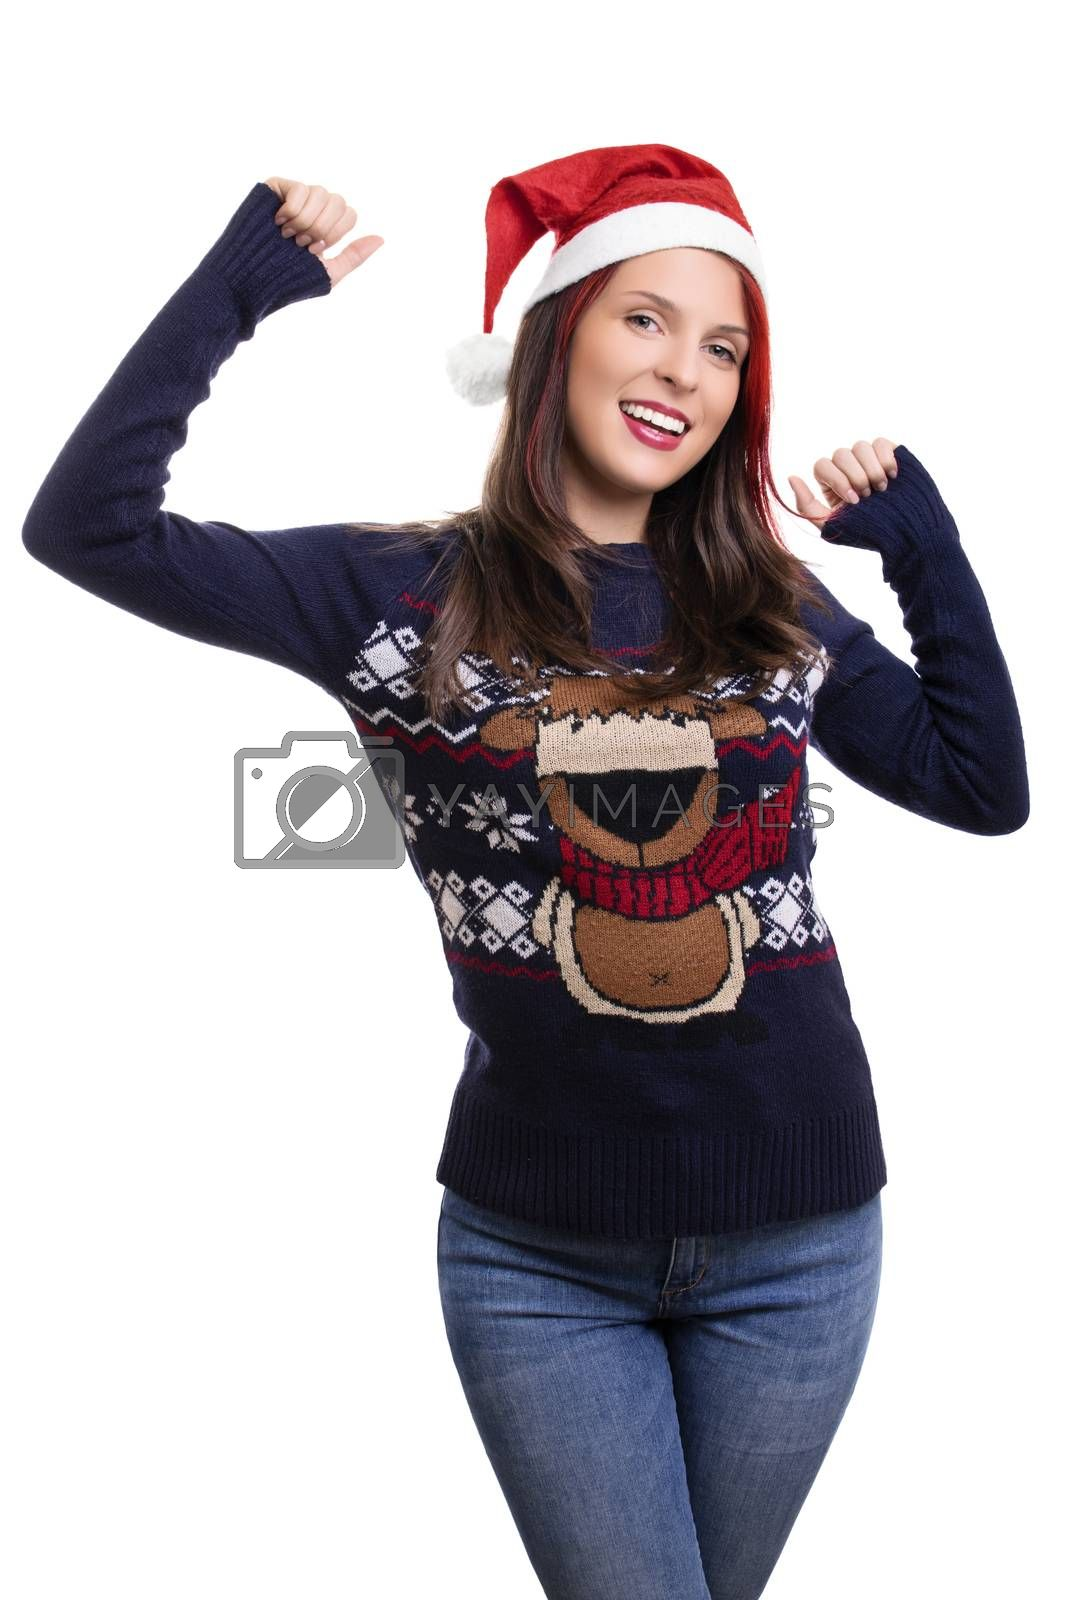 Beautiful young smiling girl wearing a Christmas hat and sweater, raising her hands in celebration, isolated on white background. Christmas and New Year concept.